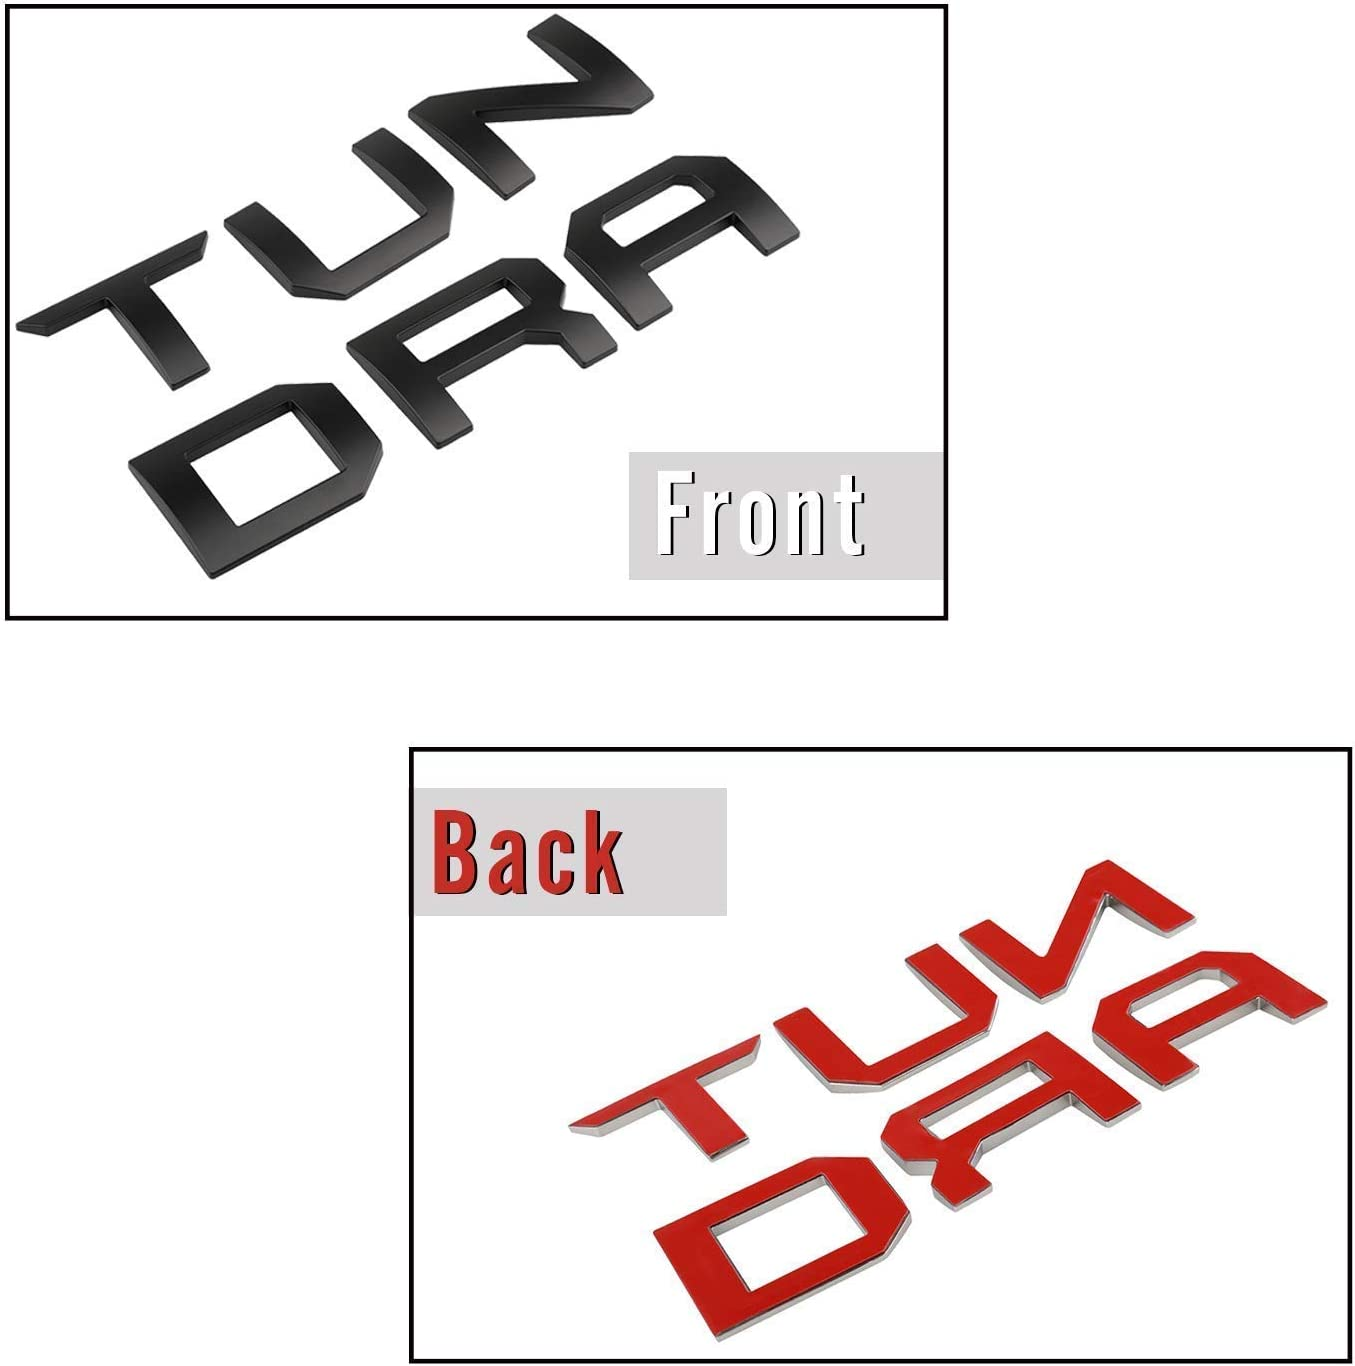 Mr Udinese Tailgate Insert Letters Compatible with Toyota Tundra 2014-2020 3D Raised /& Strong Adhesive Decals Letters Chrome Silver Tailgate Emblems Inserts Letters